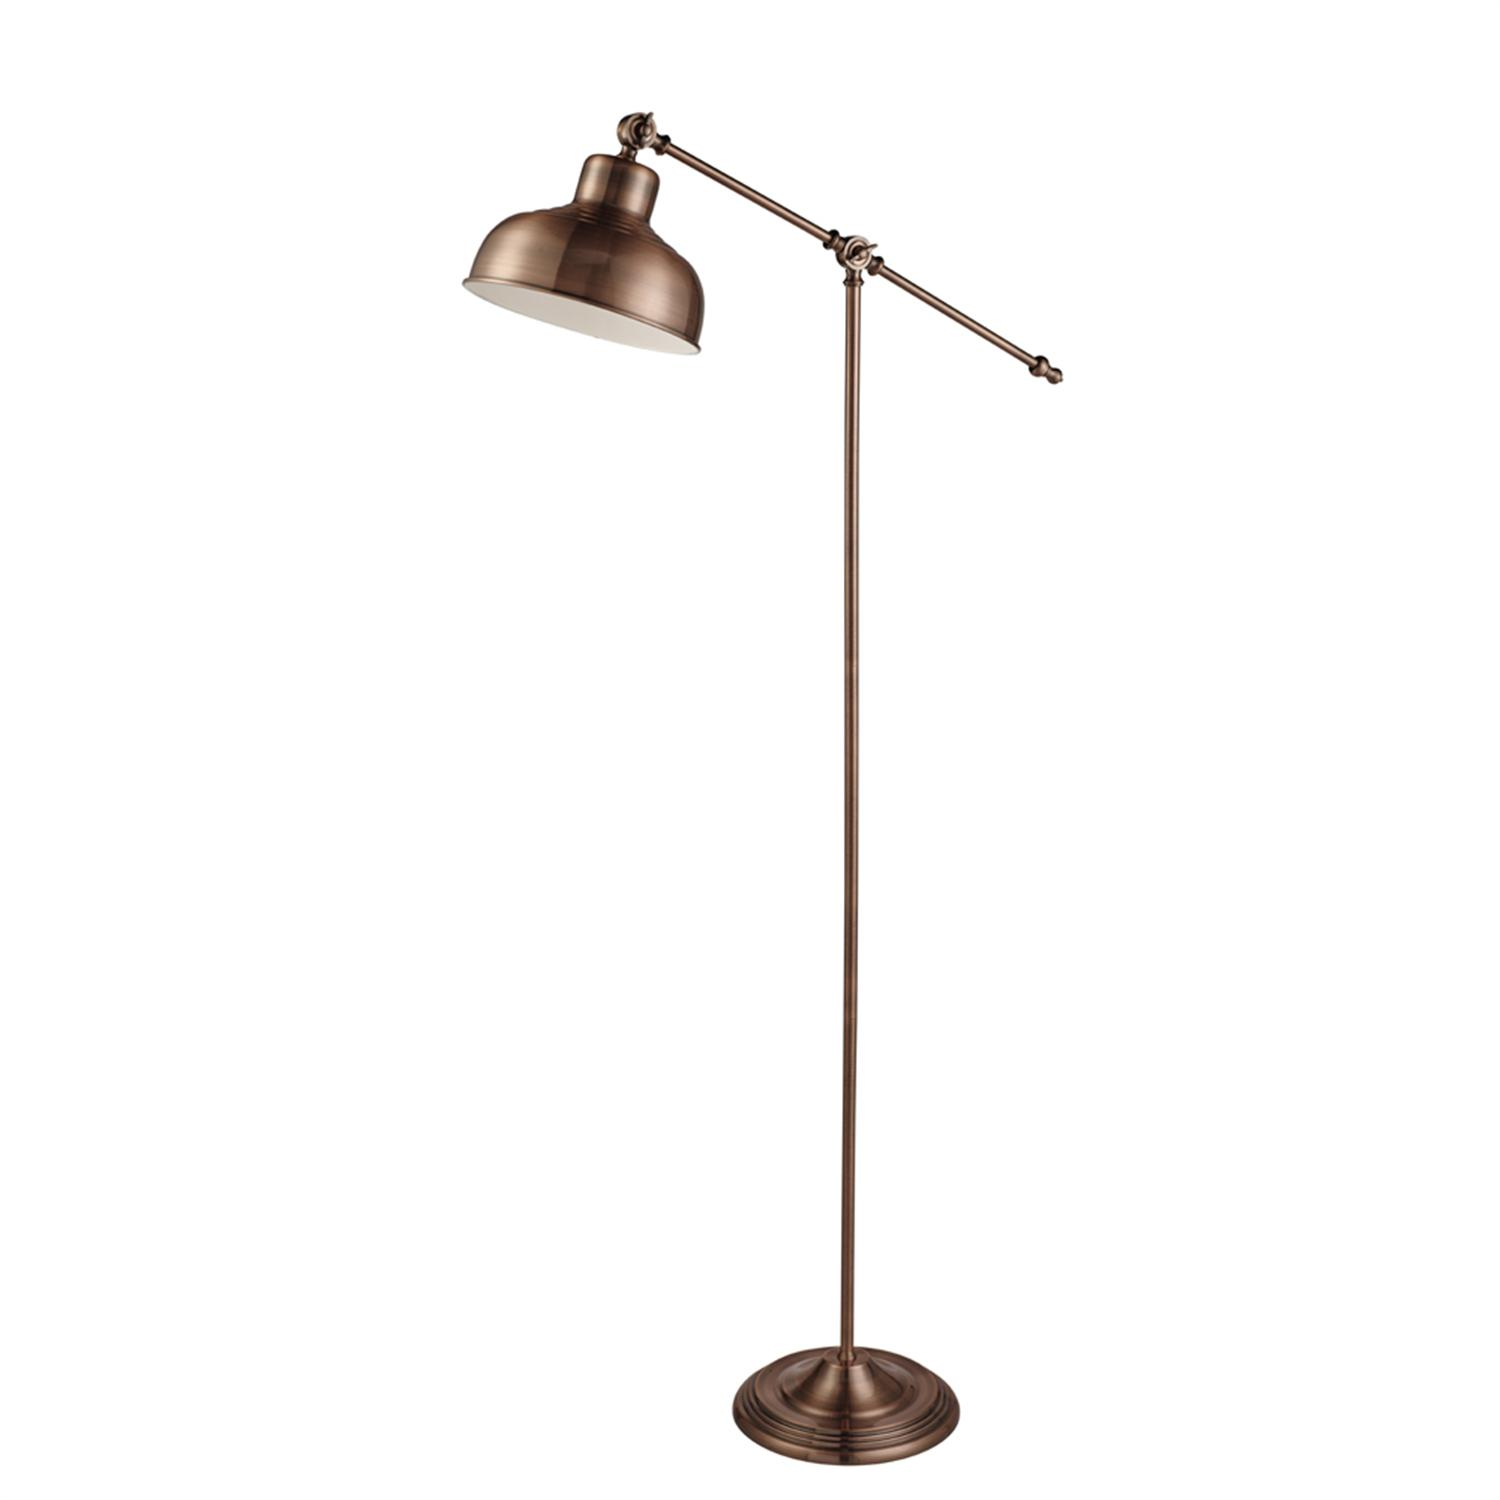 Macbeth Copper Adjustable Floor Lamp